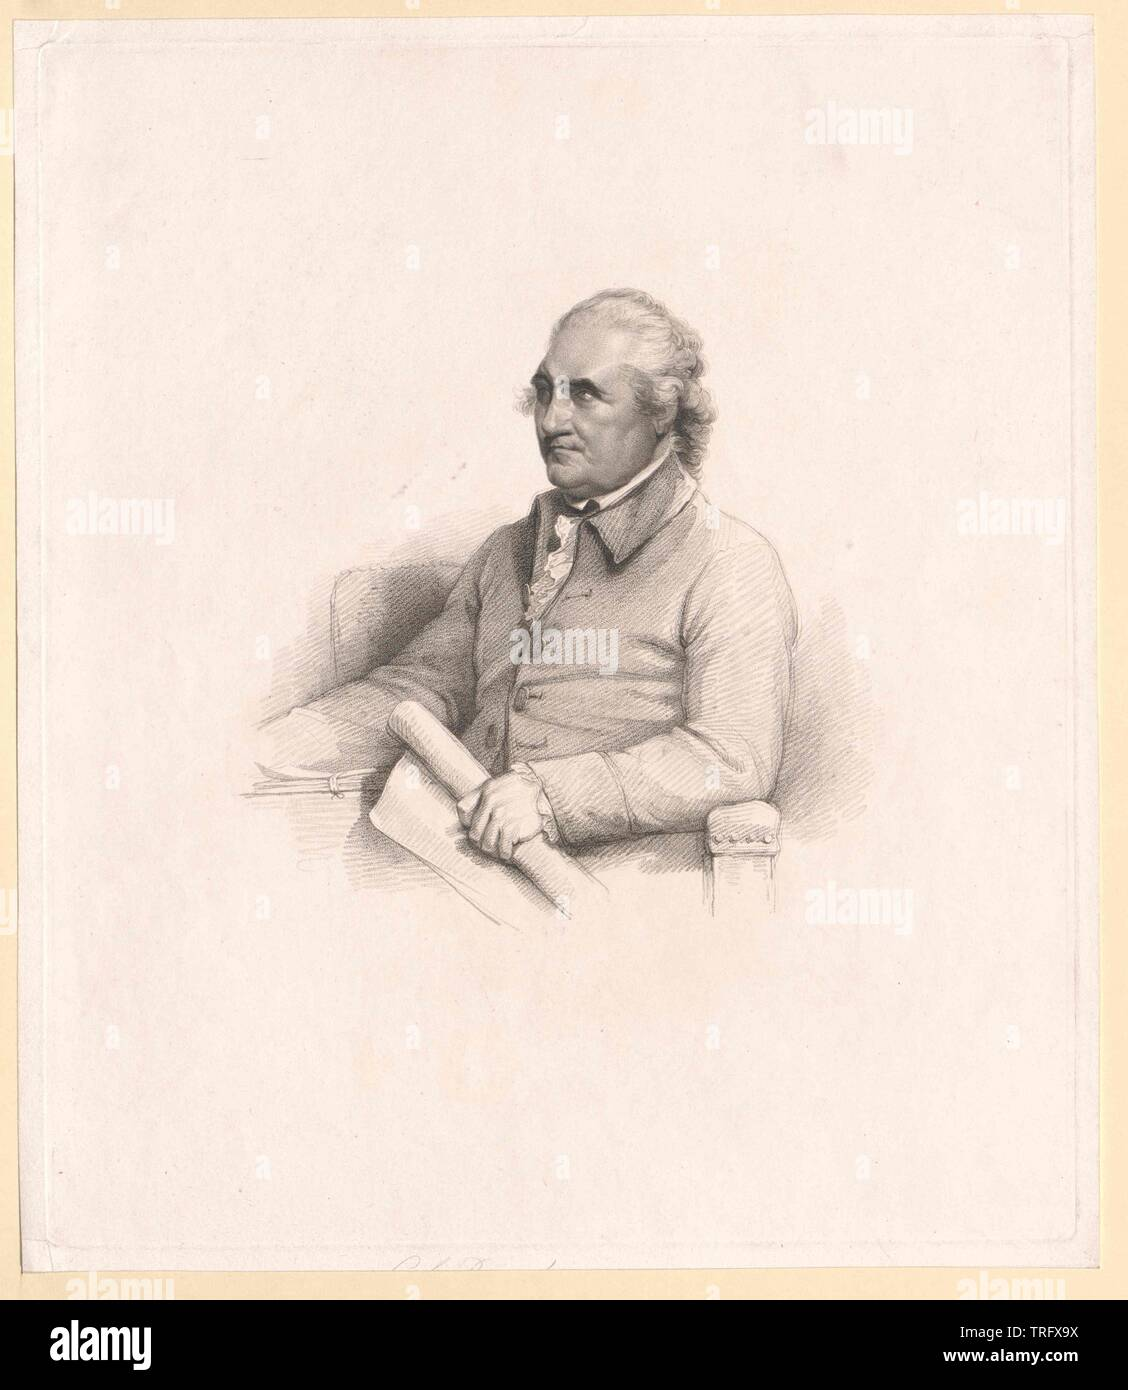 bar, Isaac, English topmost, member of parliament 1761-1790, Additional-Rights-Clearance-Info-Not-Available - Stock Image